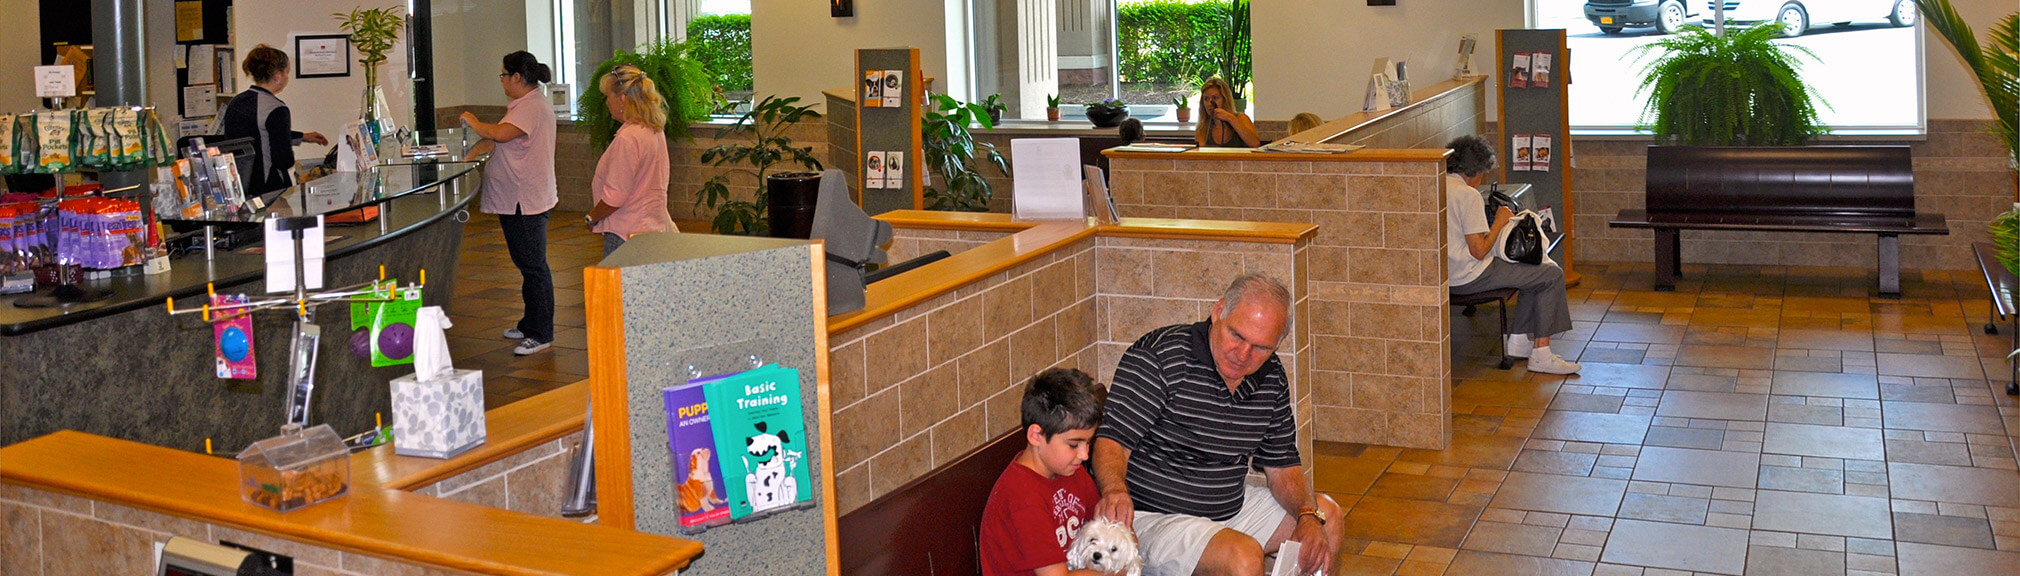 Orchard Park Veterinary Medical Center Waiting Area